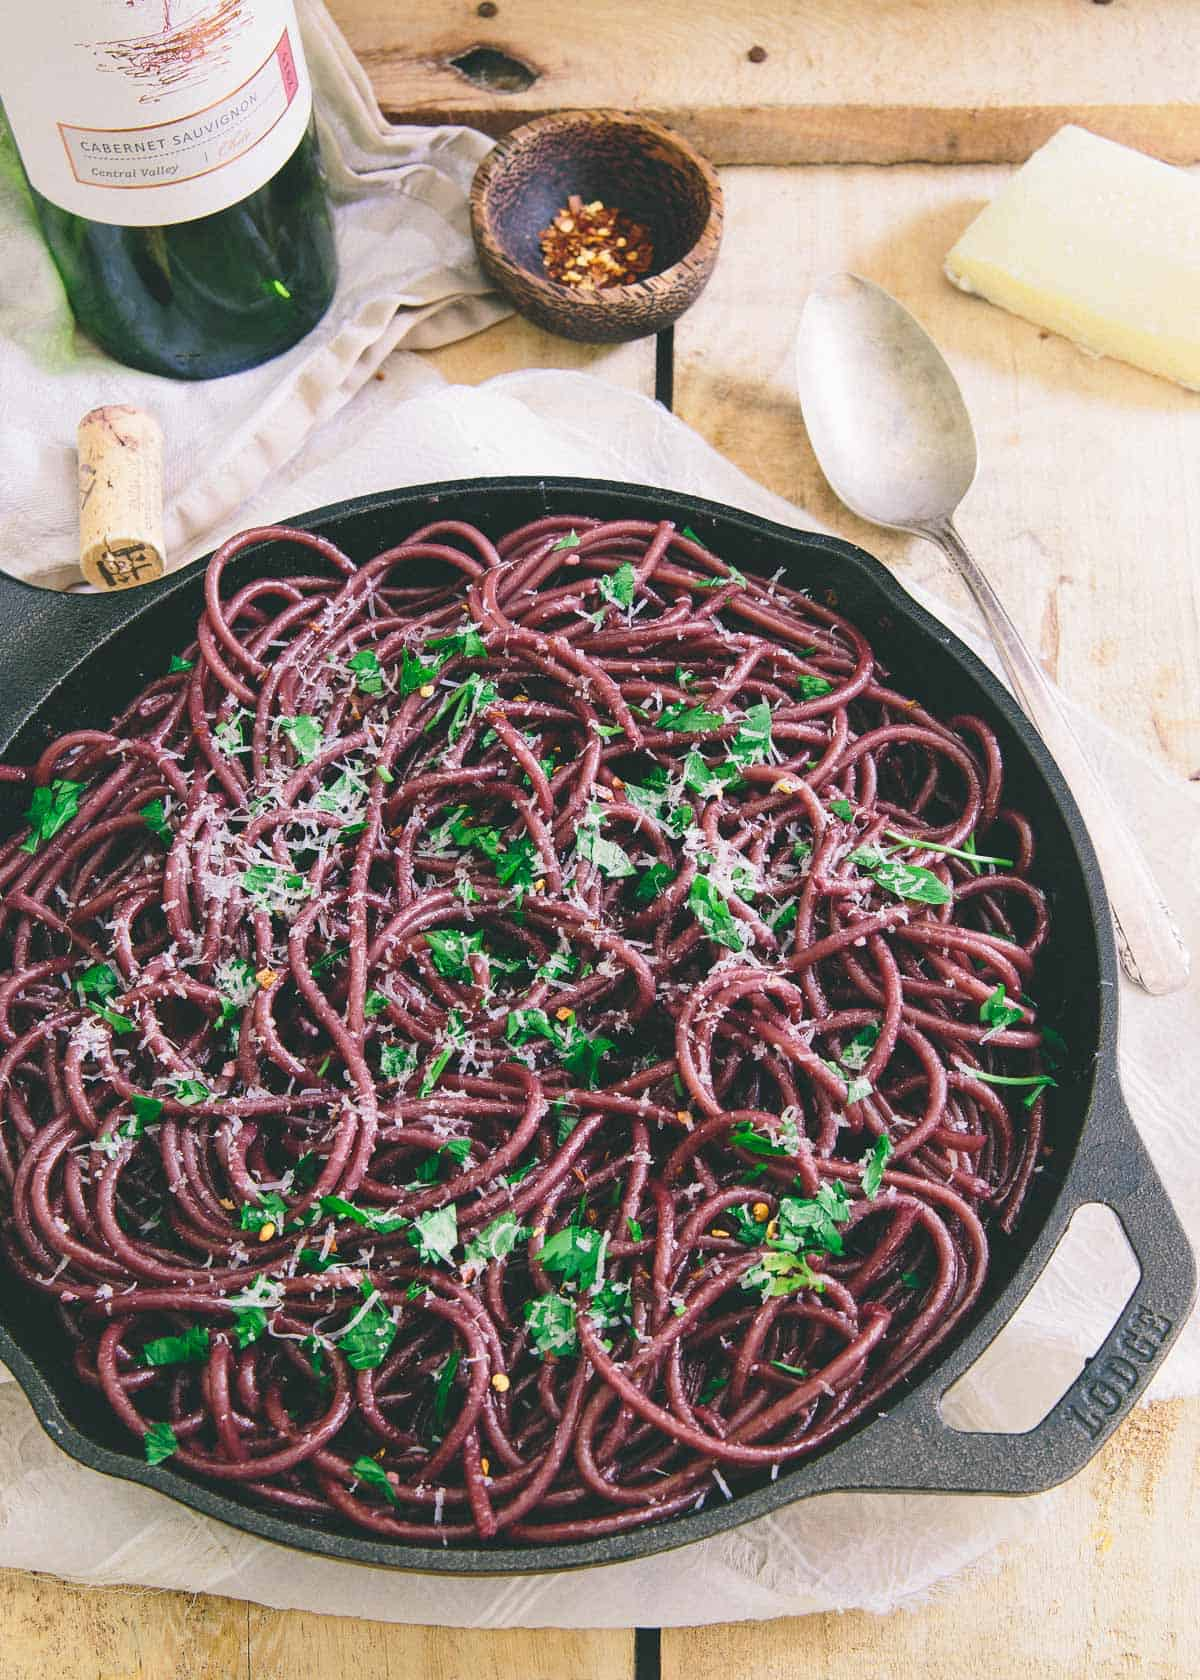 This red wine garlic bucatini is cooked in wine and then sautéed in a red wine garlic sauce. Top it with a soft boiled egg for a stunningly simple dinner.